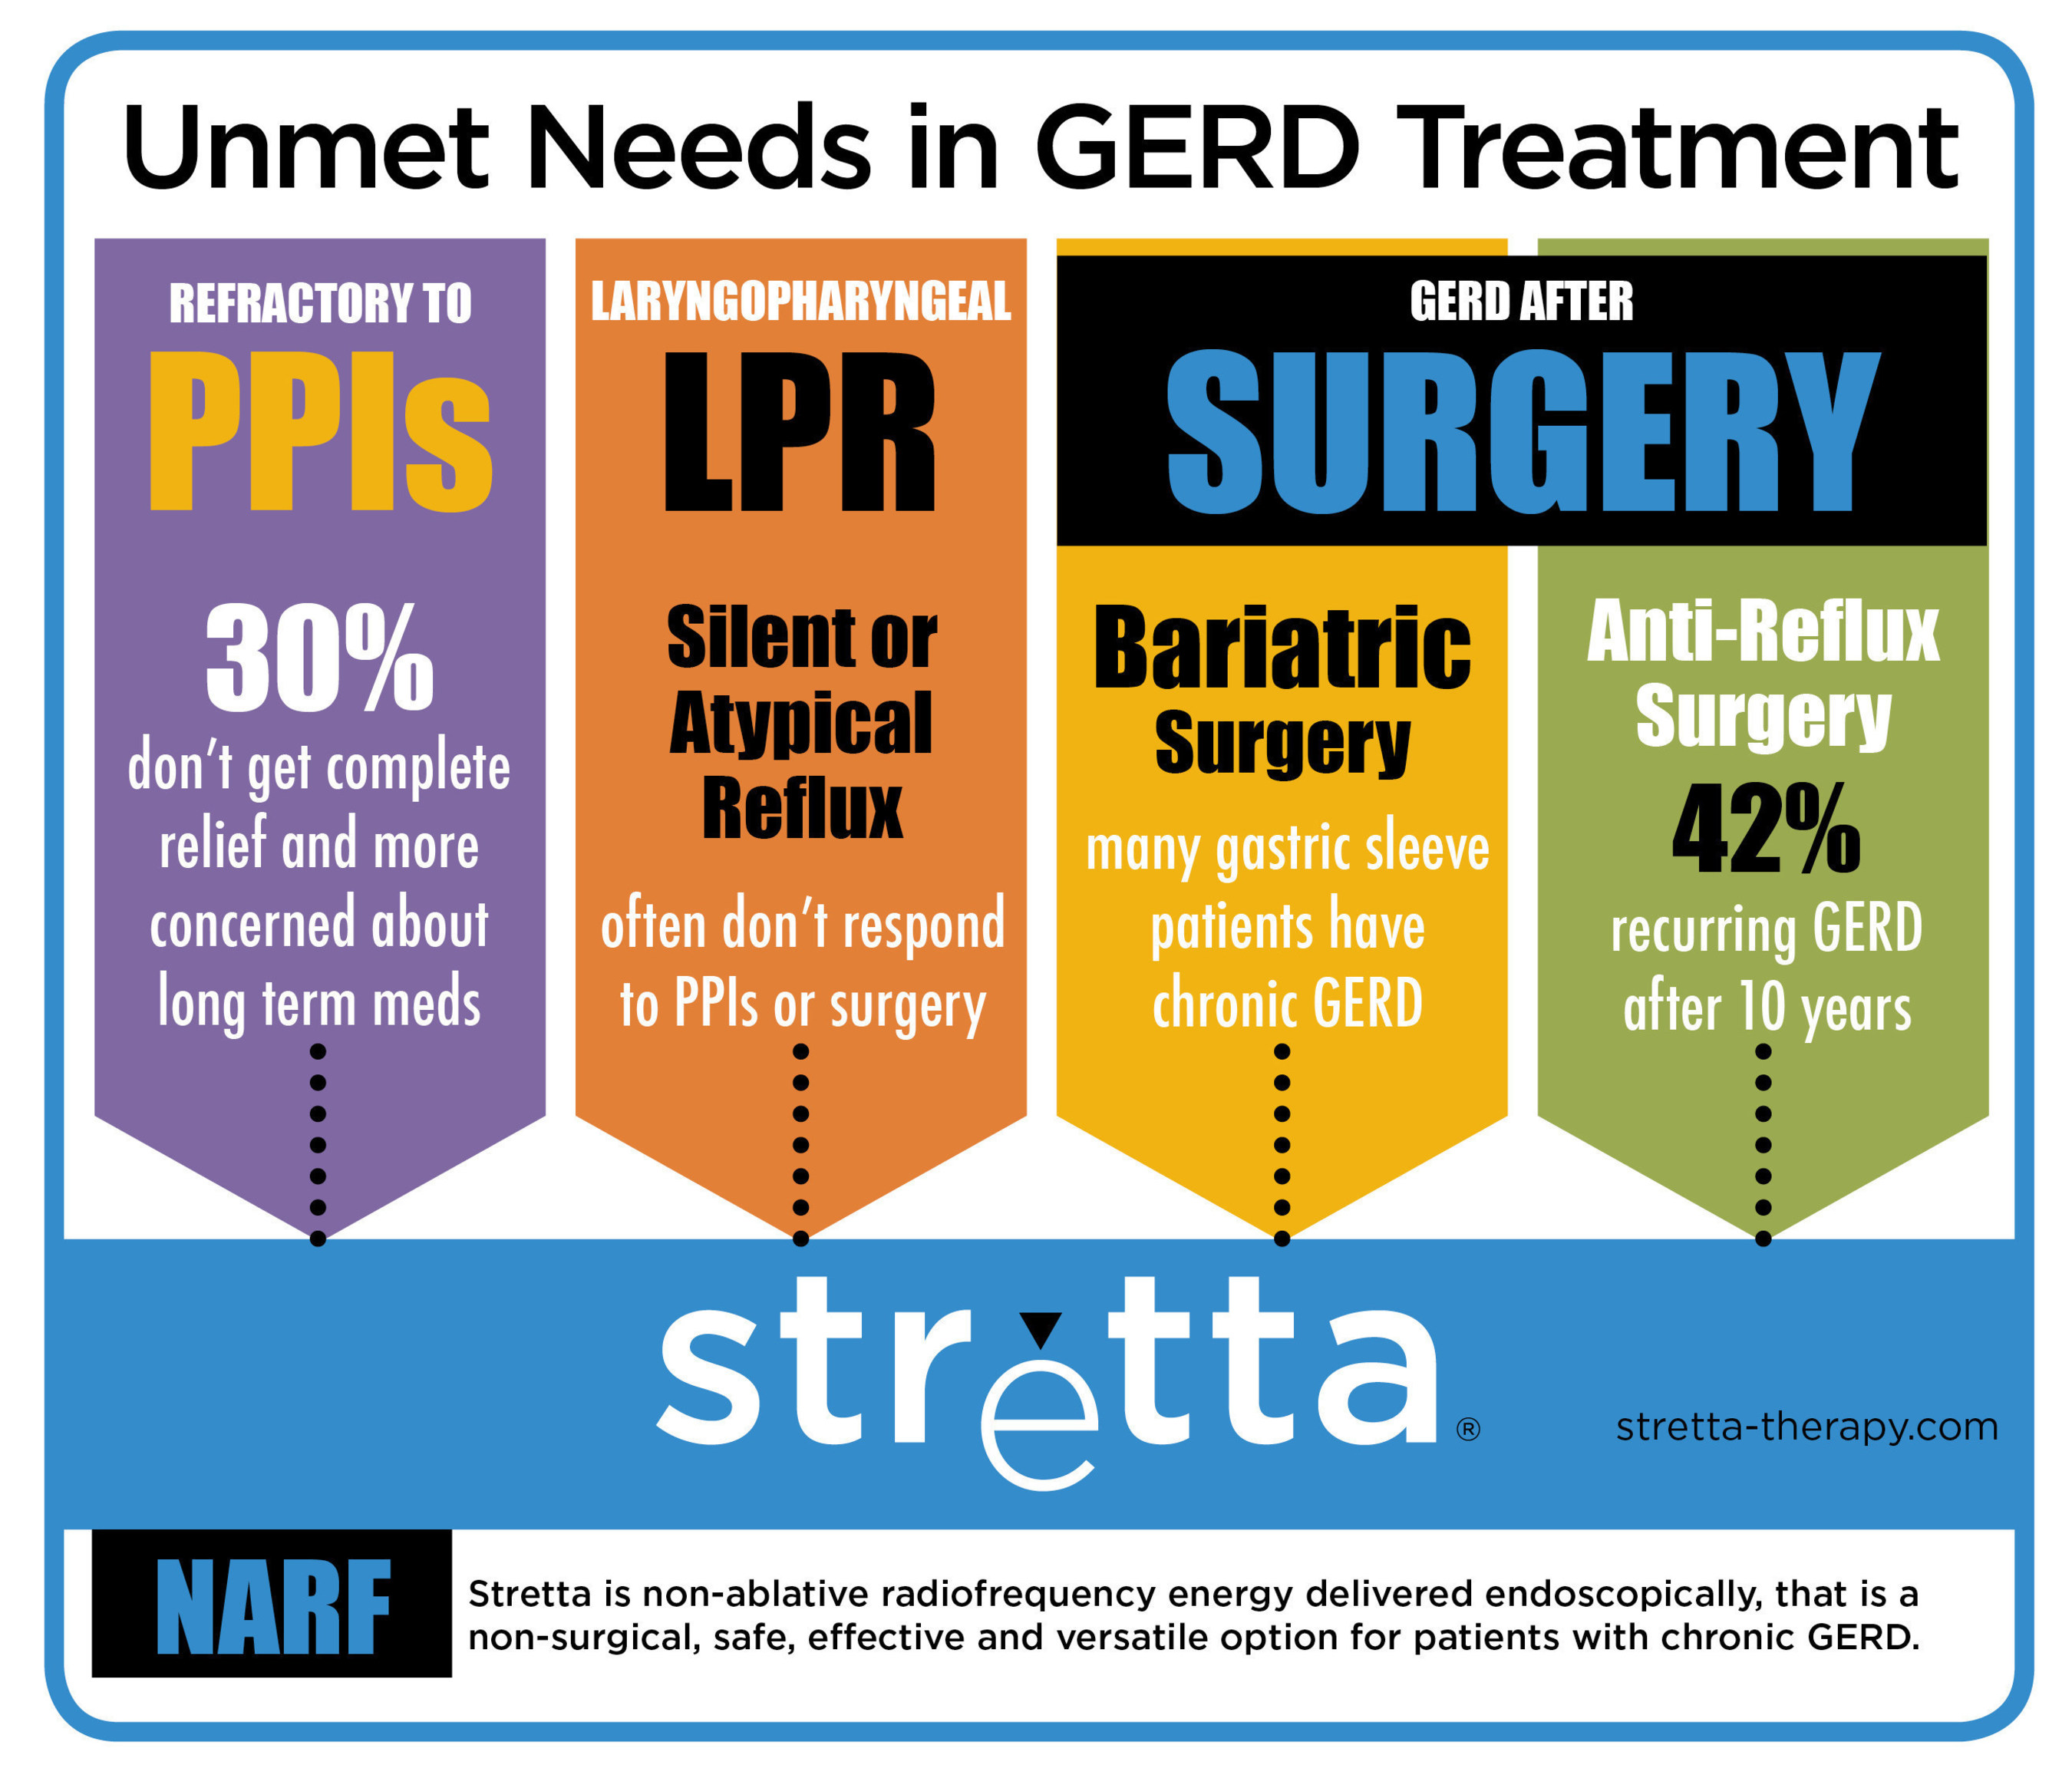 Stretta is a versatile treatment that satisfies an unmet need in multiple patient populations with chronic GERD. Stretta therapy is a non-surgical treatment for GERD that uses non-ablative radiofrequency (NARF) energy to improve the structure of the muscle at the junction of the stomach and esophagus, thereby significantly improving GERD symptoms. Stretta fills the treatment gap when PPIs are ineffective and before anti-reflux surgery, and does not preclude future surgery if necessary. Additionally...